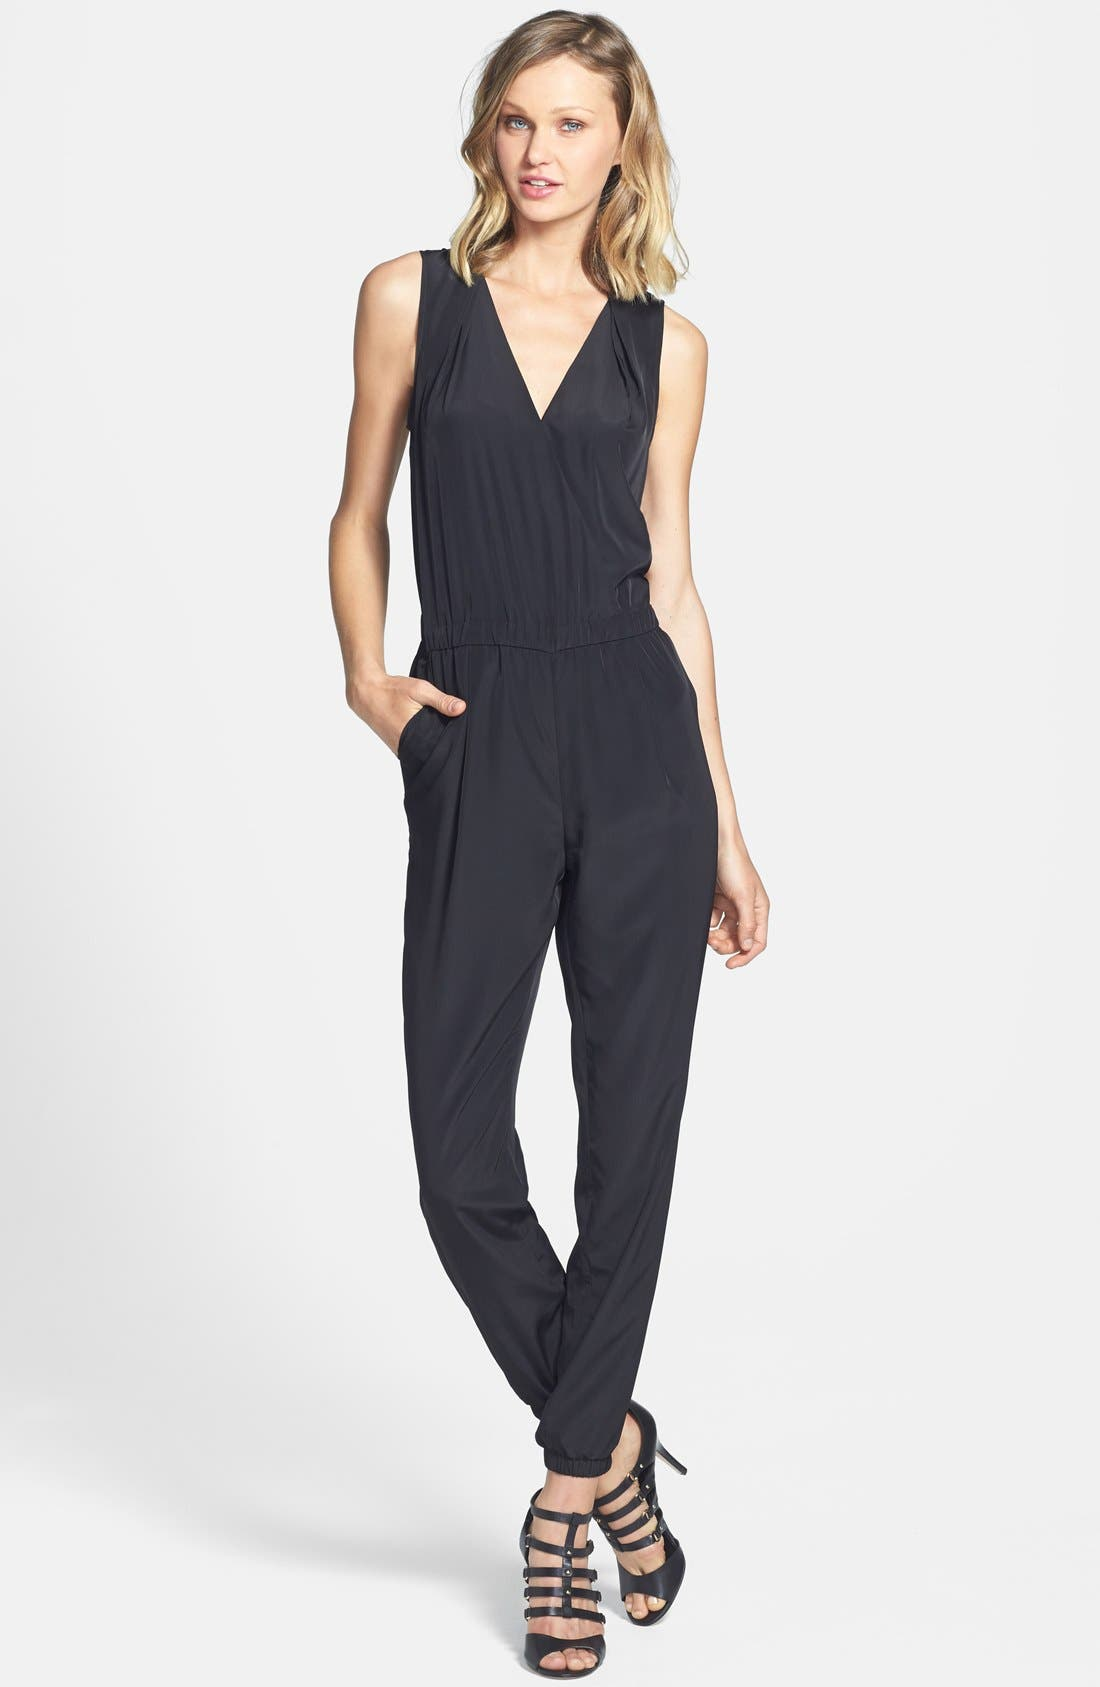 V-Neck Sleeveless Jumpsuit,                         Main,                         color, 001